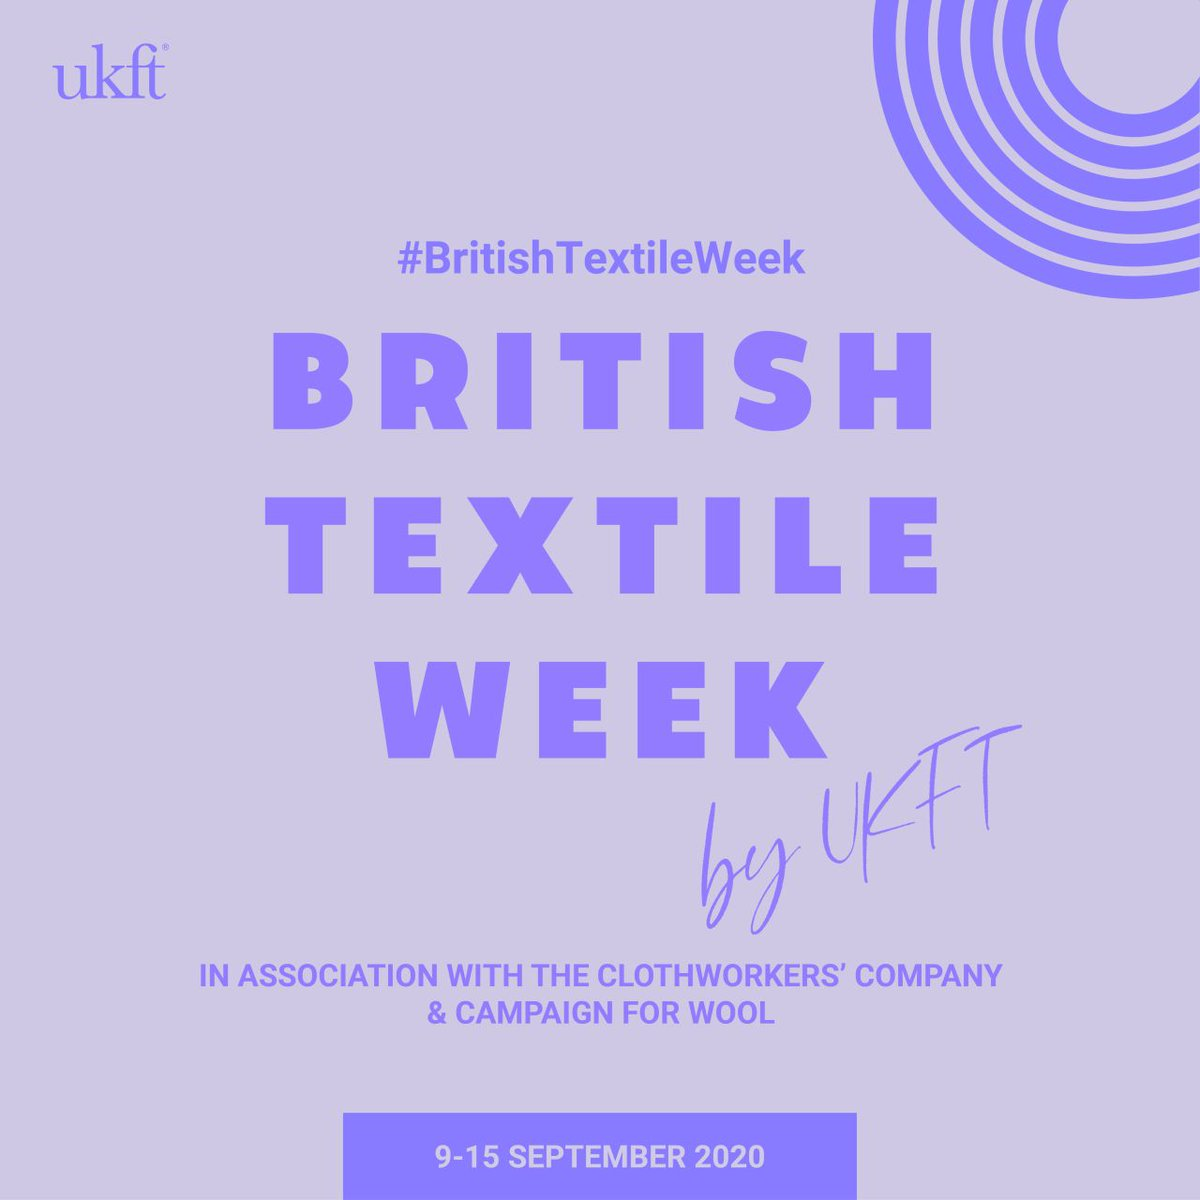 A showcase of the craftsmanship, imagination and innovation of the UK textile industry - whats not to love. Keep your eyes peeled for this digital showcase appearing on your screens soon! @UKFTorg @Campaignforwool #Britishtextilesweek #HarrisTweed